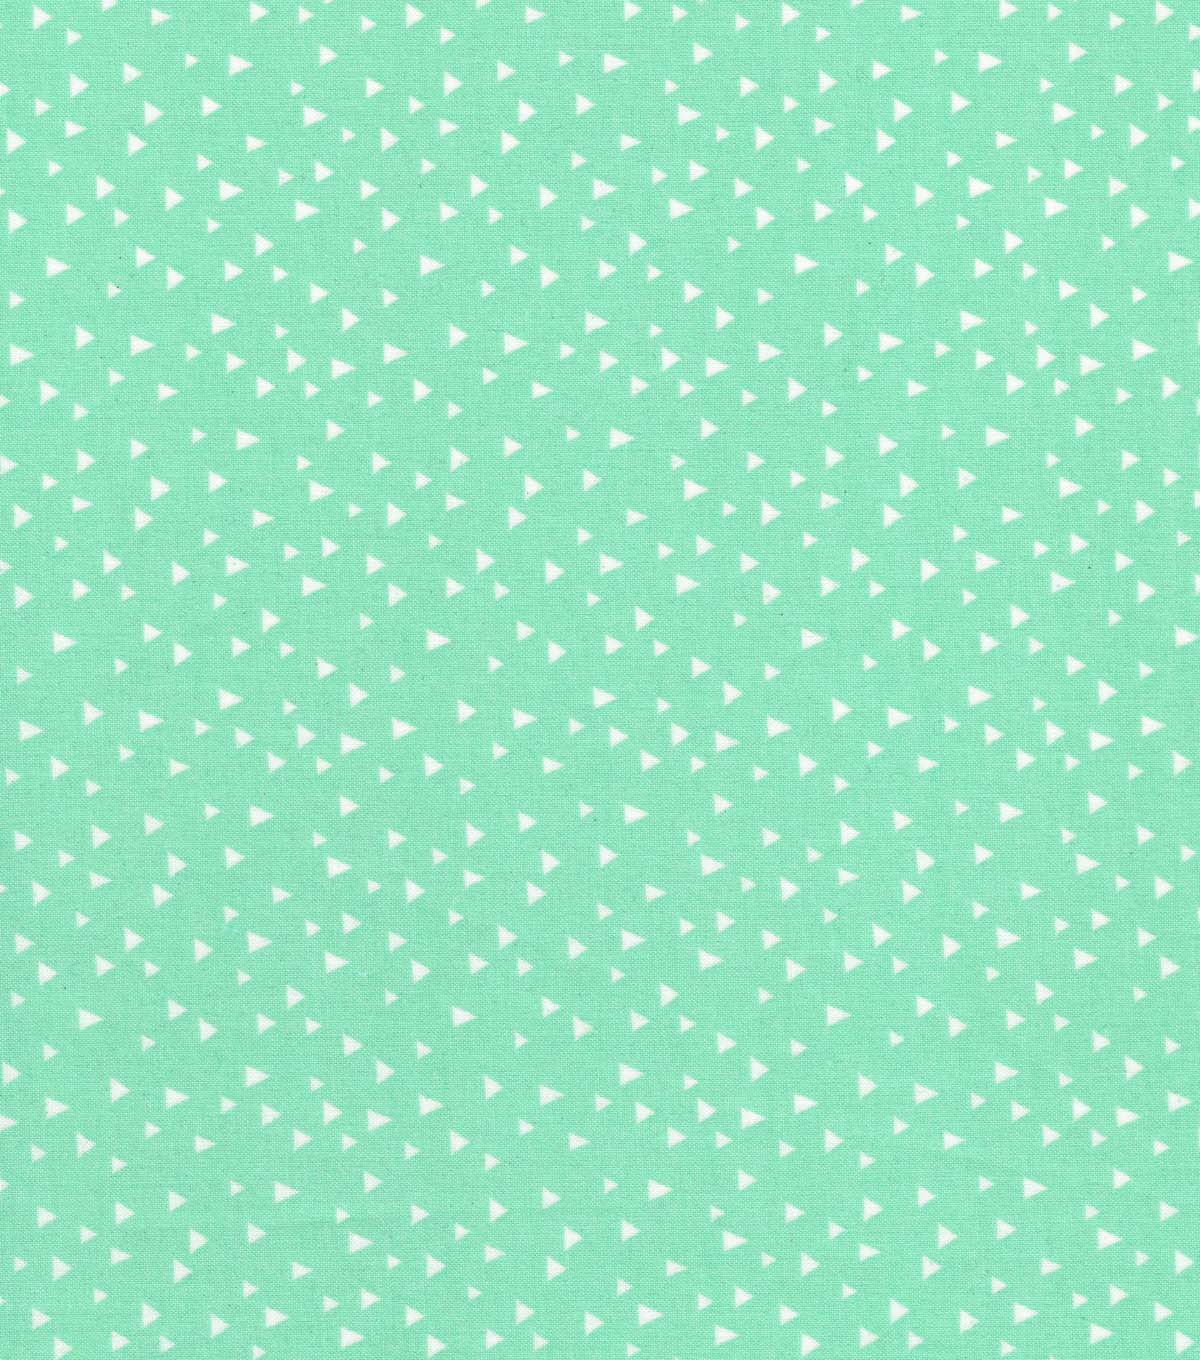 Quilter\u0027s Showcase Cotton Fabric 44\u0027\u0027-White Scattered Triangles on Mint